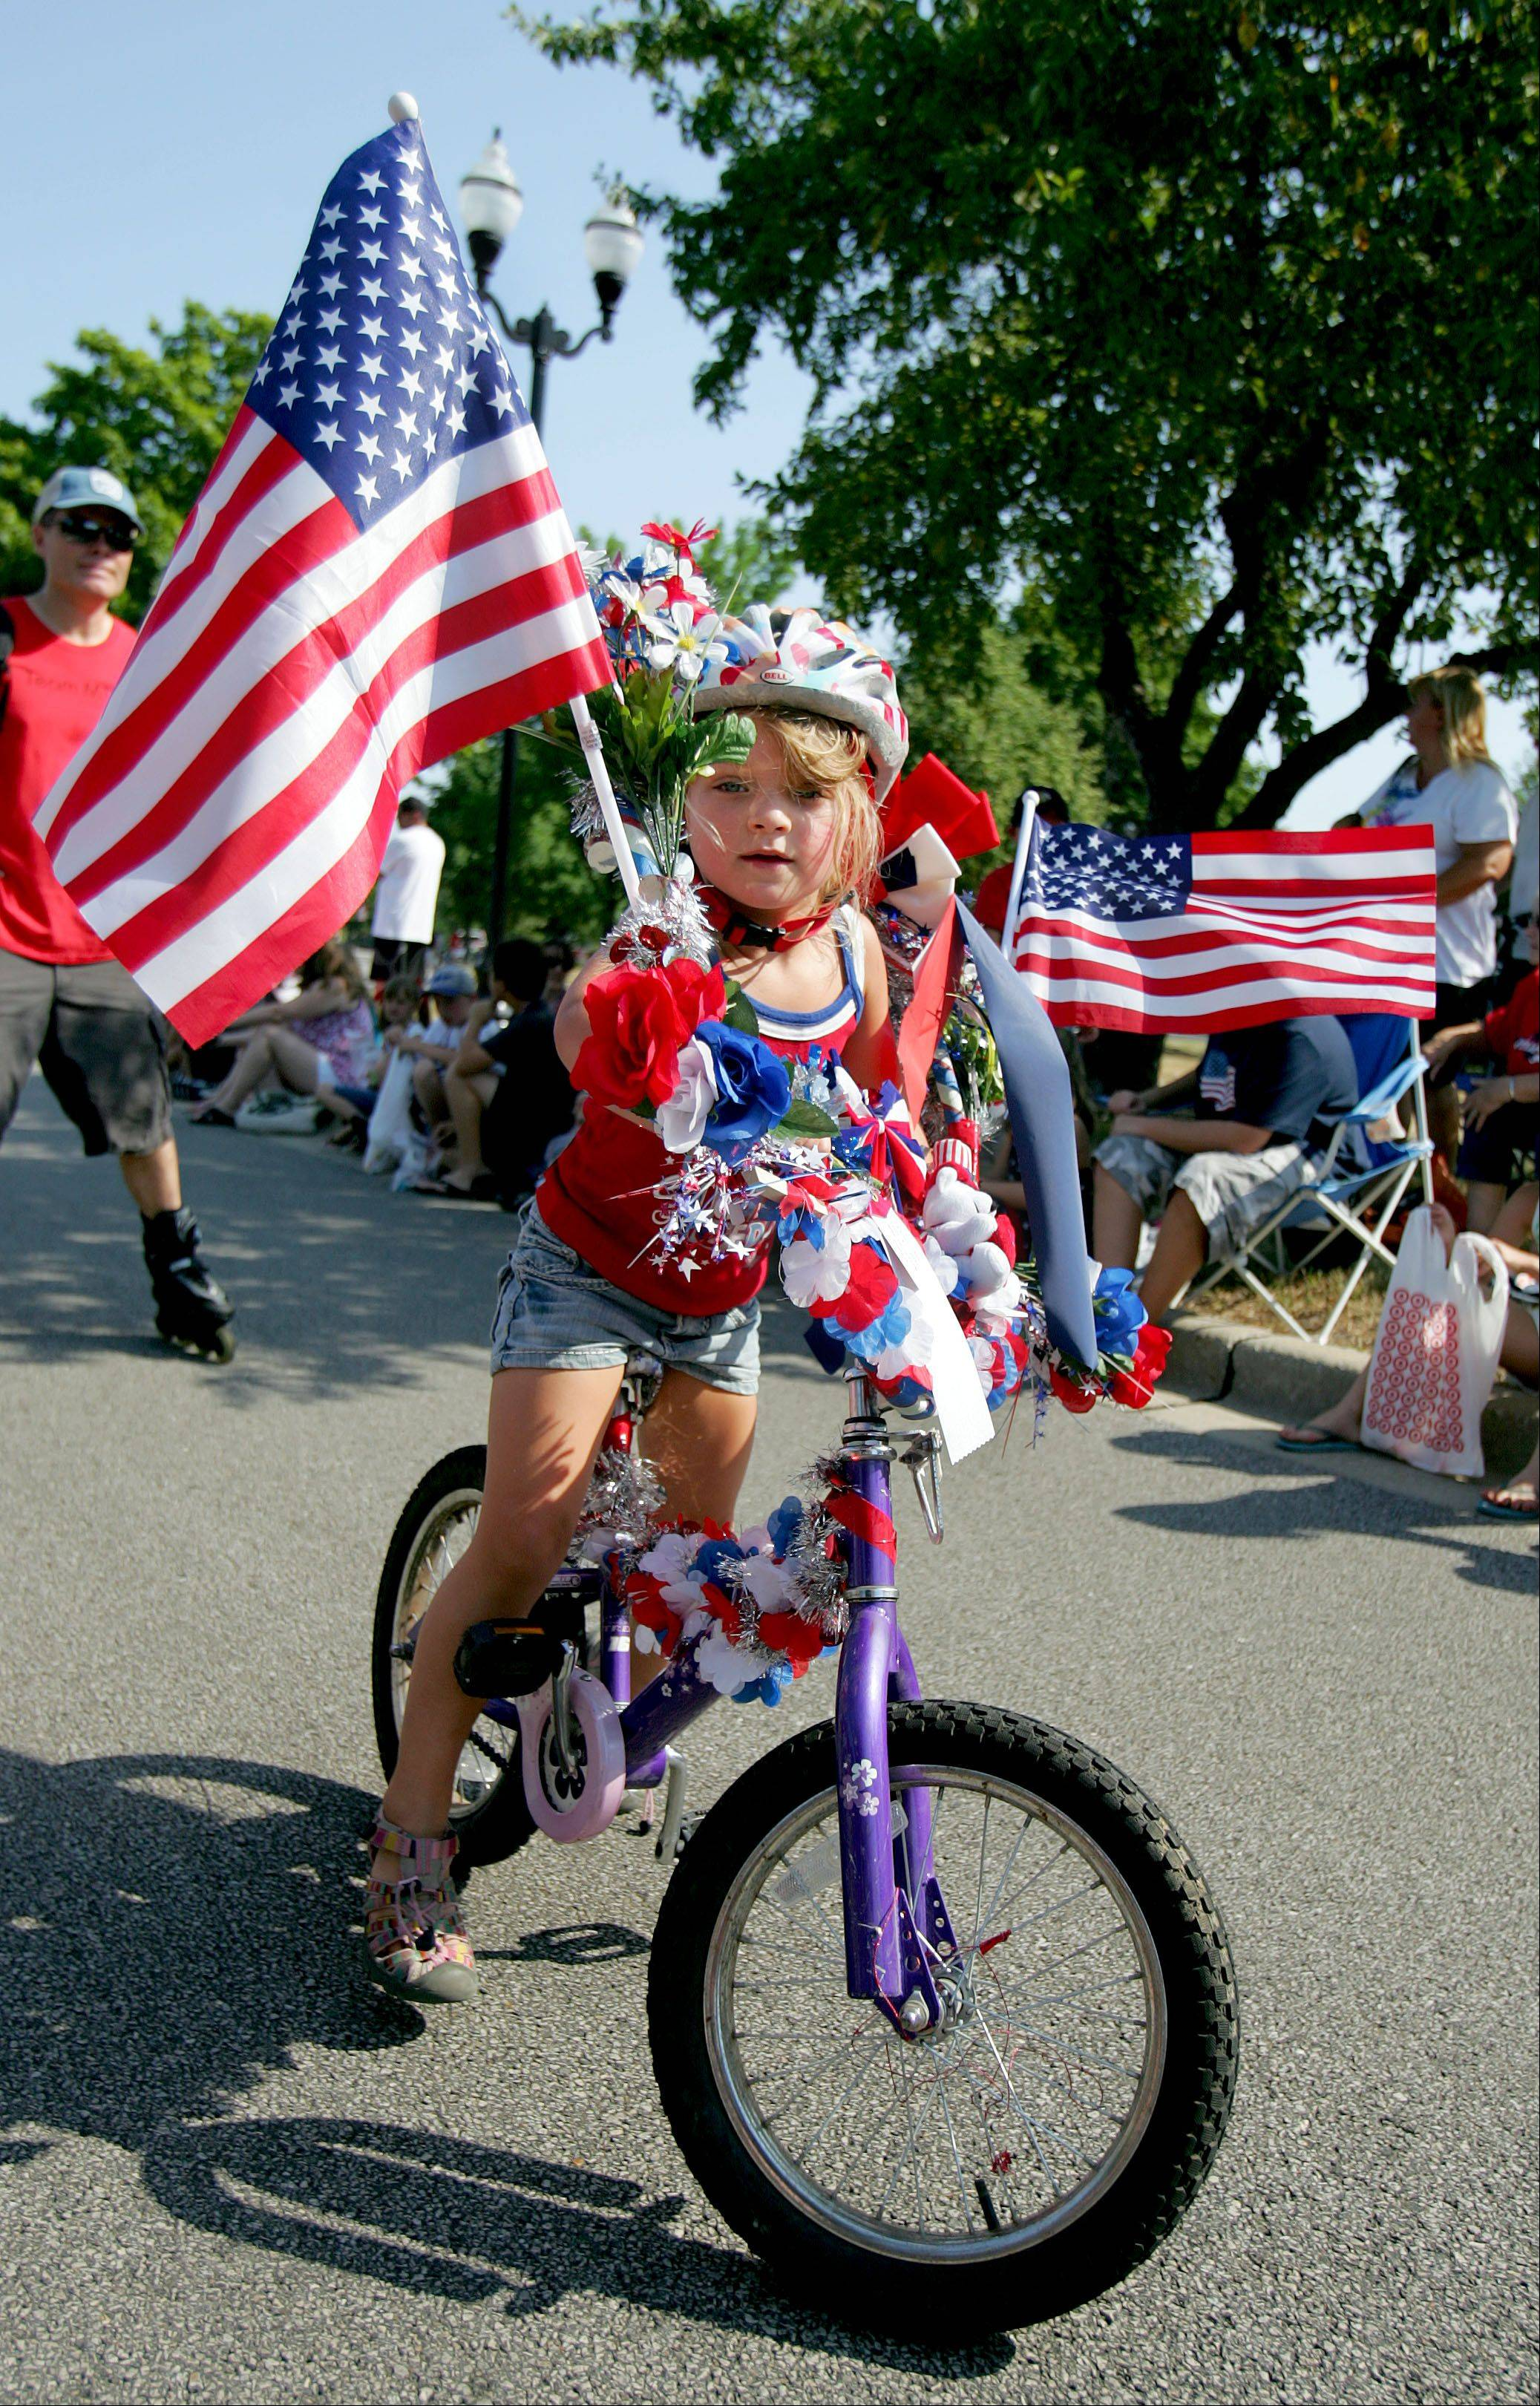 Five-year-old Clara Sheridan of Vernon Hills shows off her decorated bike as she participates in the Vernon Hills Fourth of July Parade Wednesday morning.